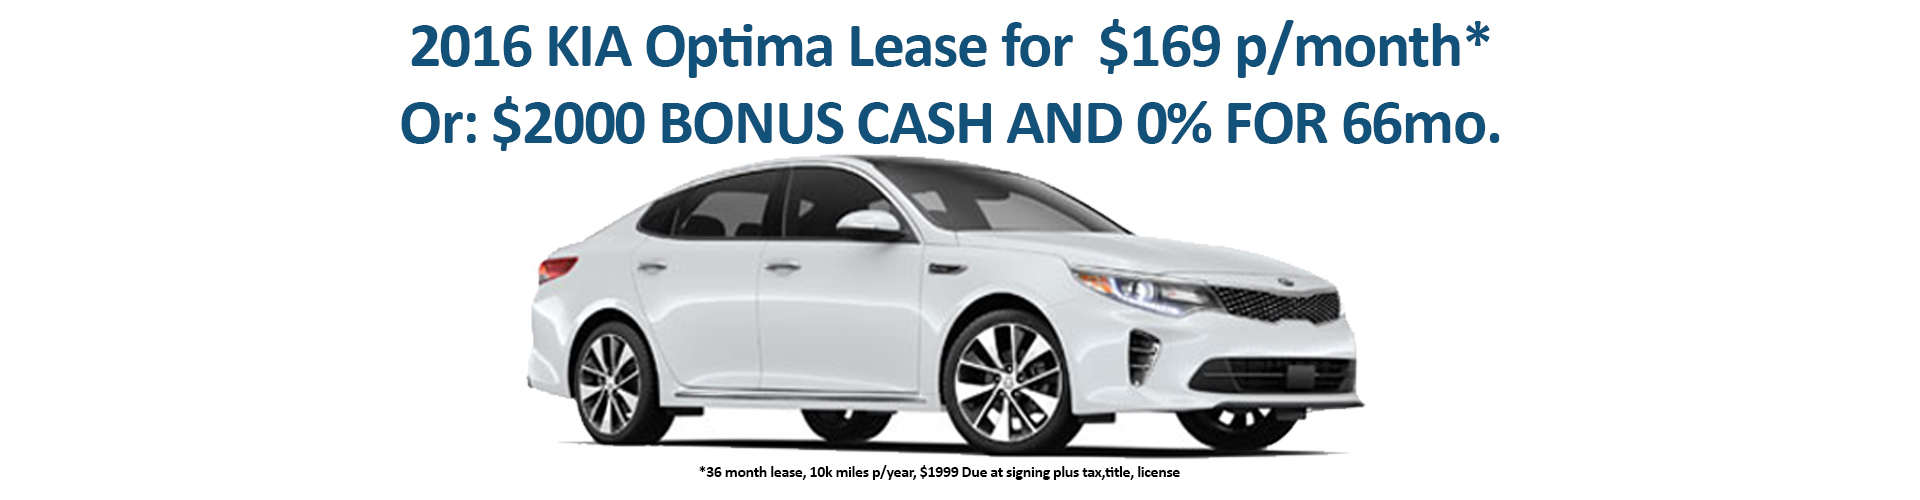 2016 KIA OPTIMA LEASE OFFER